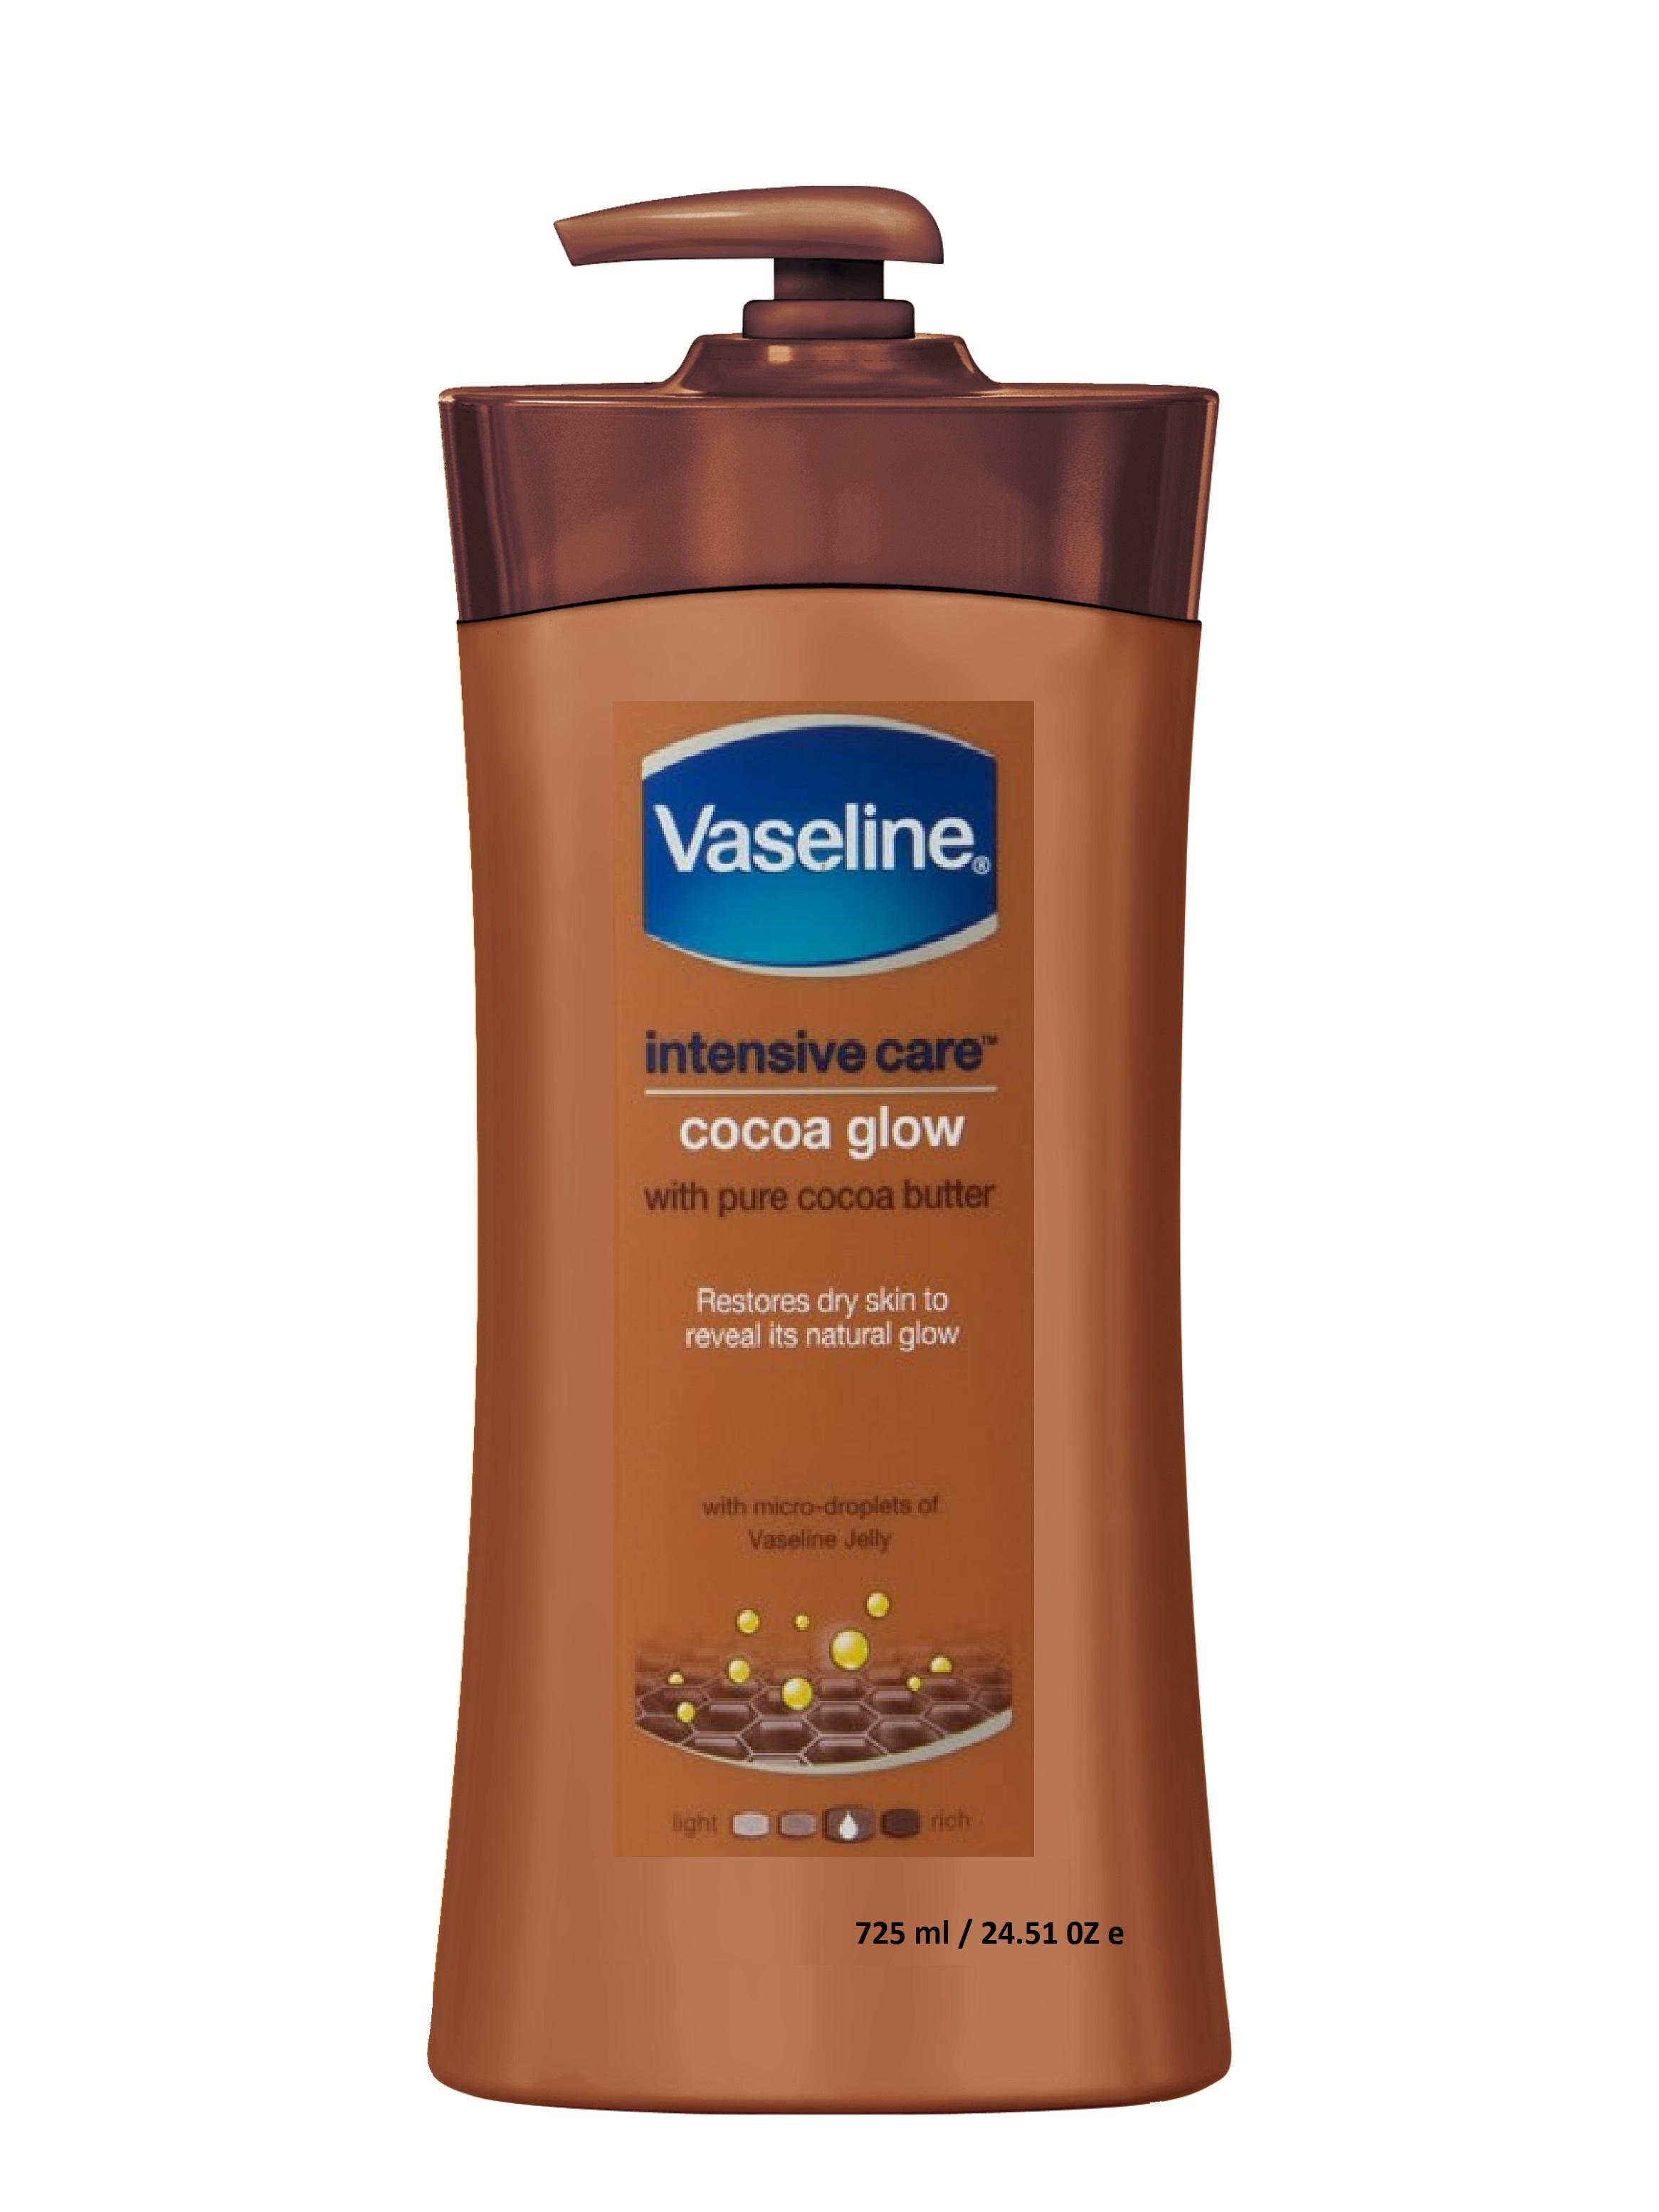 Dưỡng ẩm Vaseline intensive care Cocoaglow body lotion 725ml